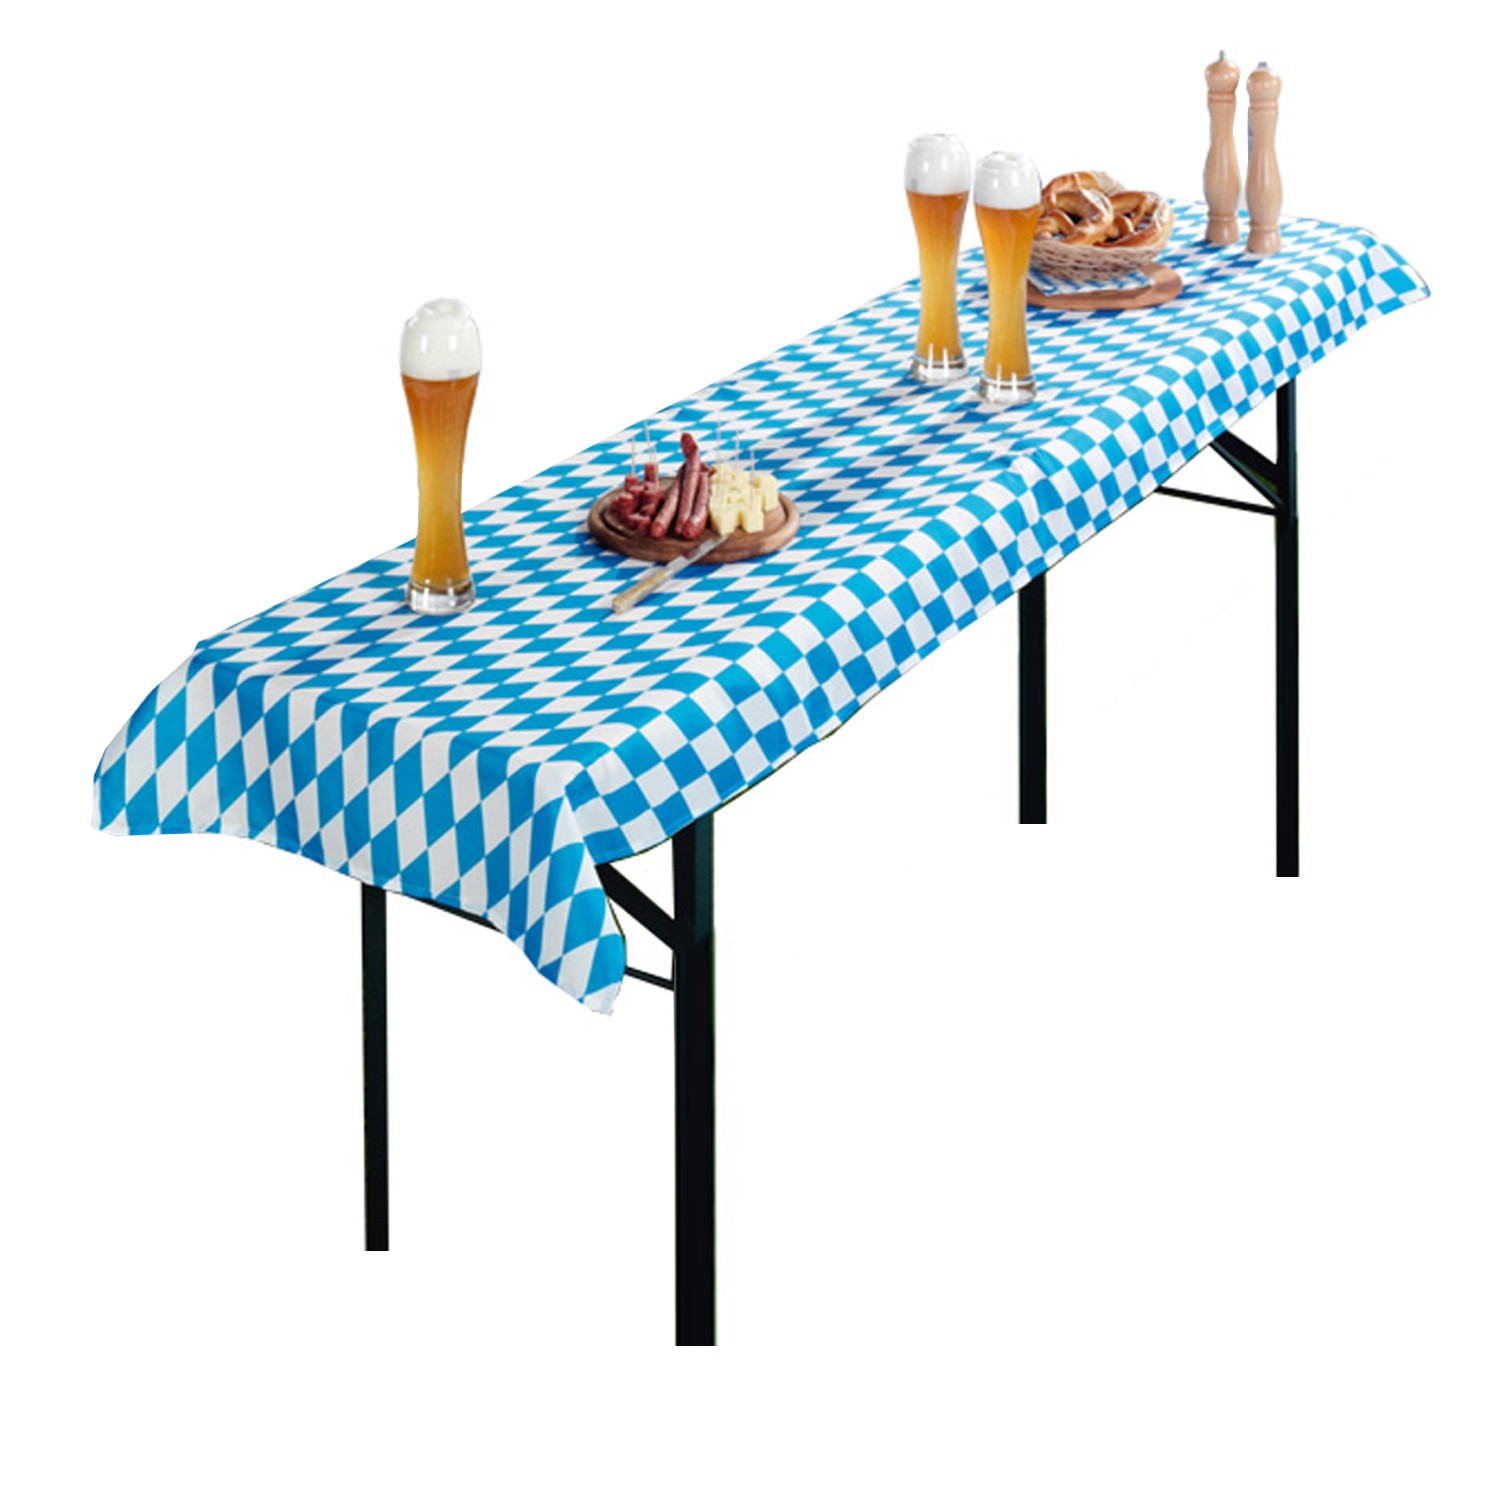 tischdecke f r bierzeltgarnitur biertisch tischtuch gartentischdecke tischl ufer ebay. Black Bedroom Furniture Sets. Home Design Ideas